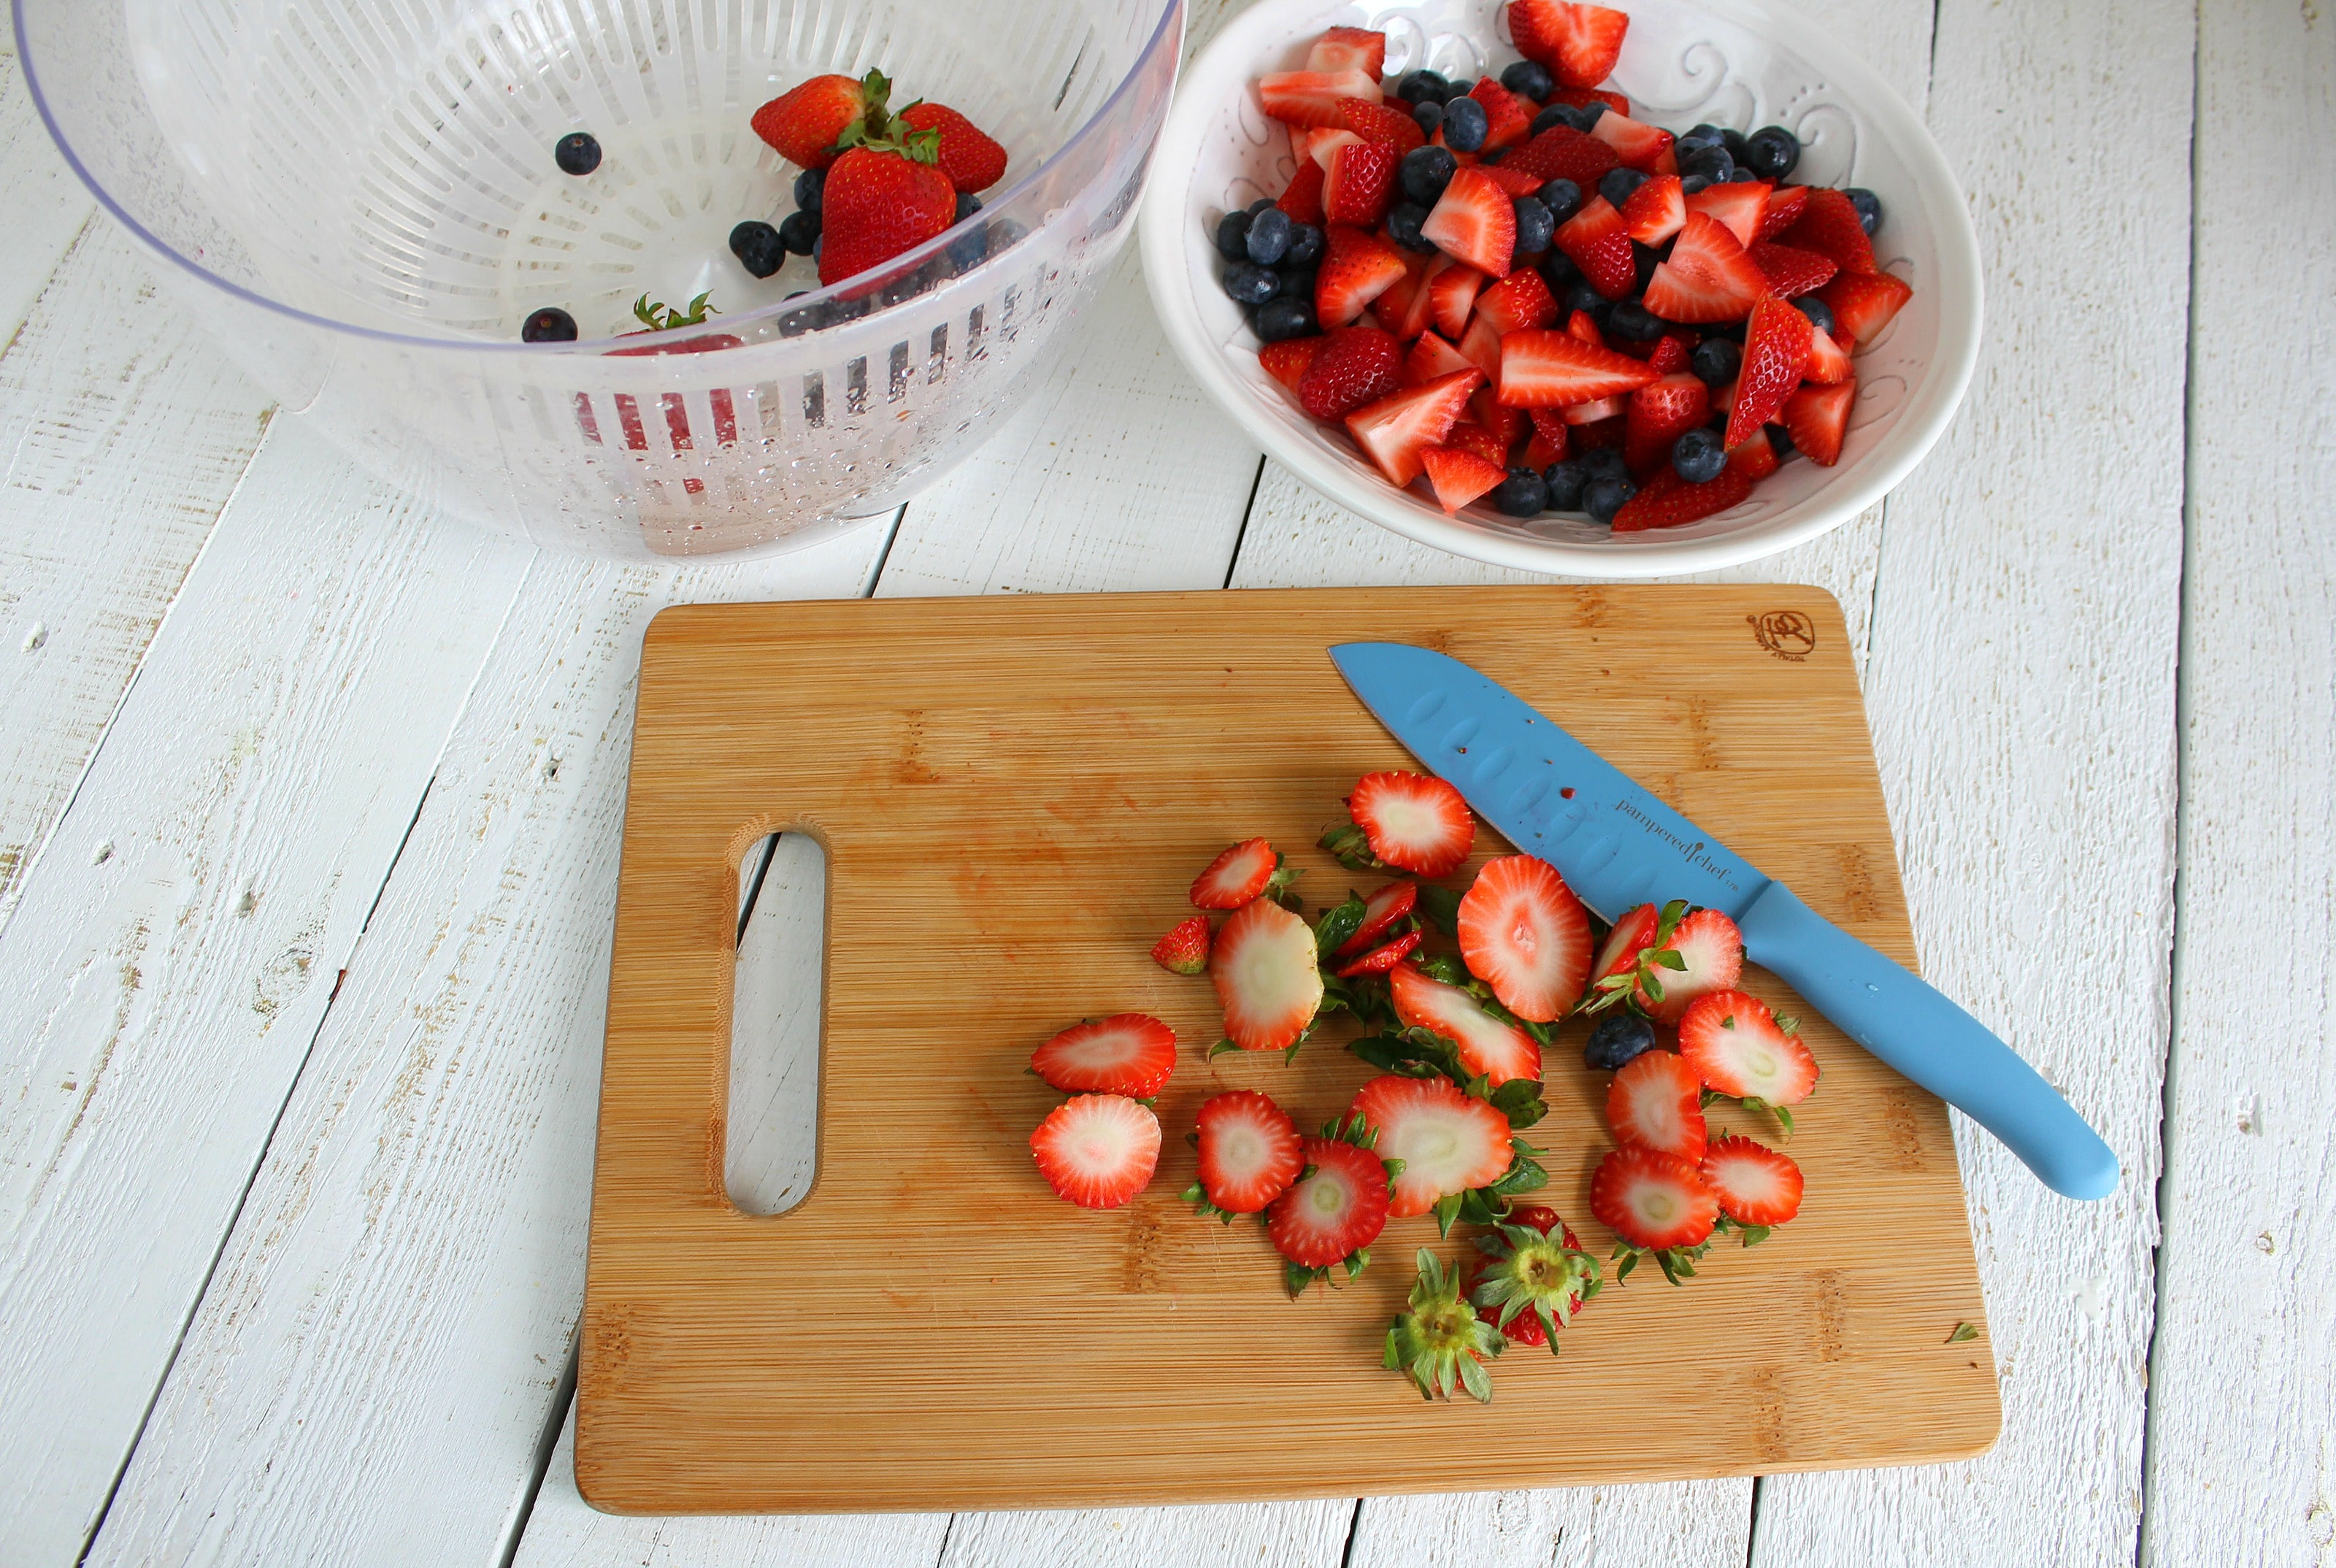 Cup tops off strawberries and chop strawberries into smaller pieces